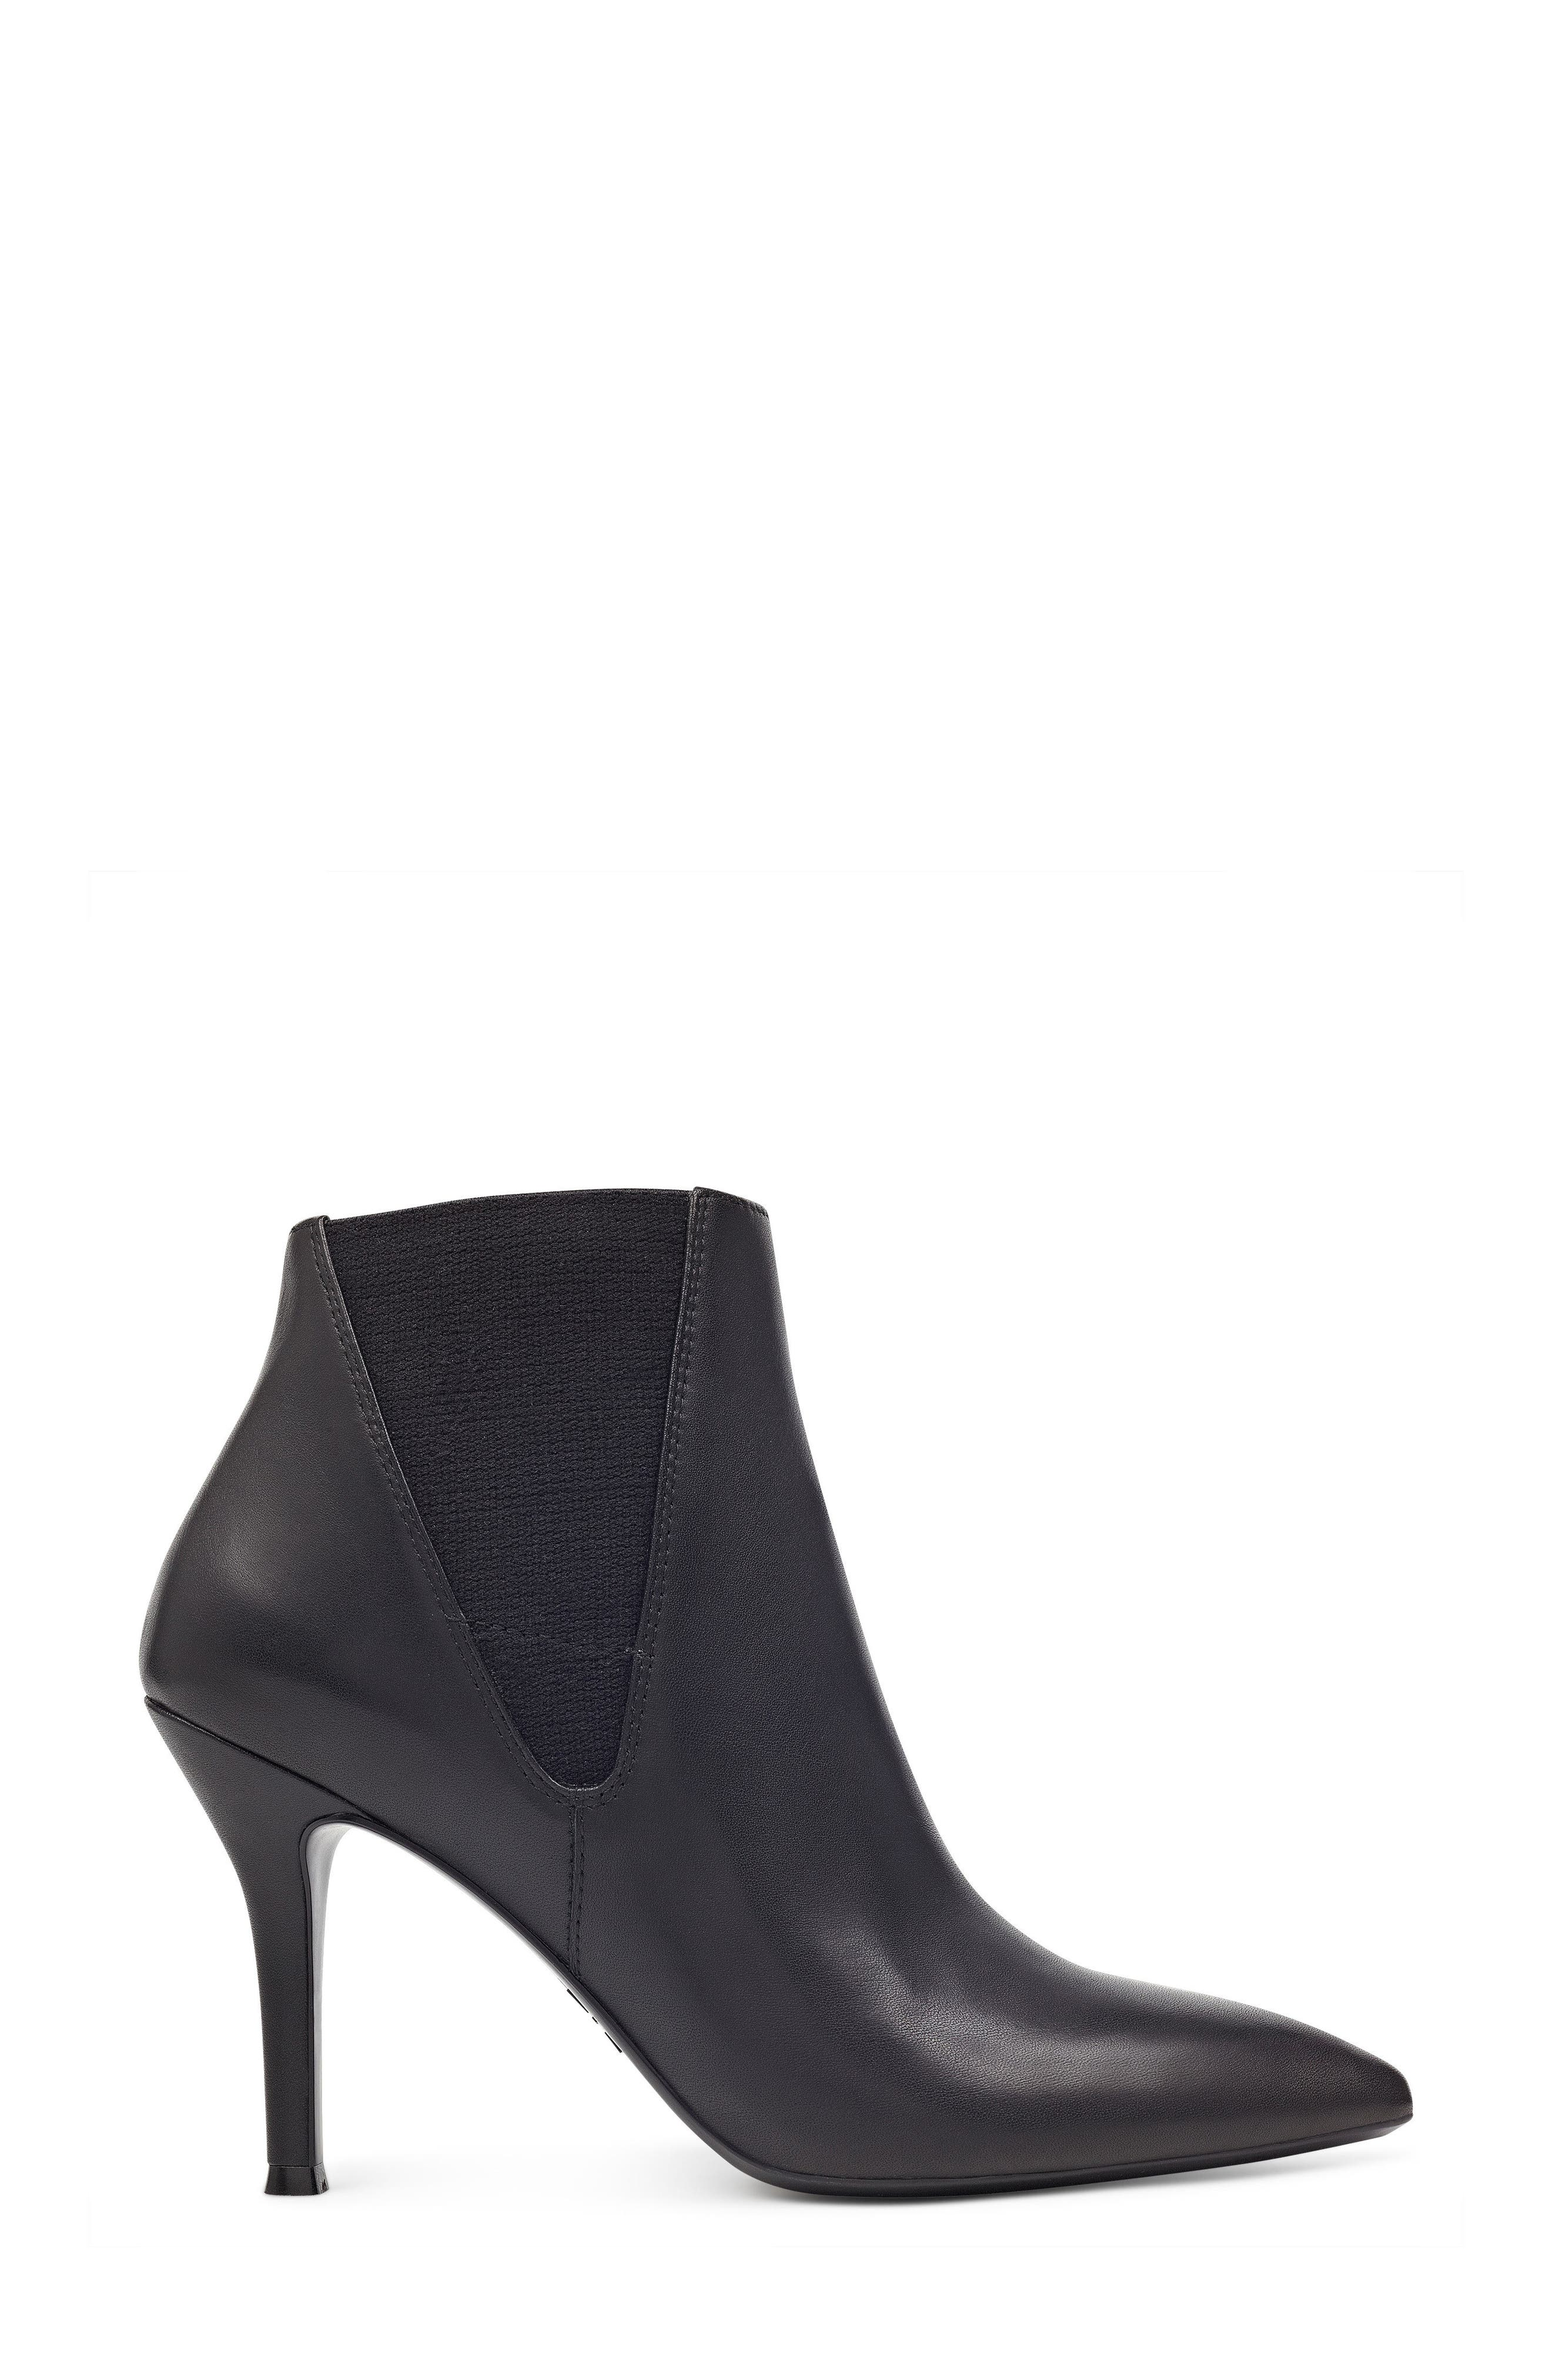 NINE WEST,                             Pointy Toe Bootie,                             Alternate thumbnail 3, color,                             001